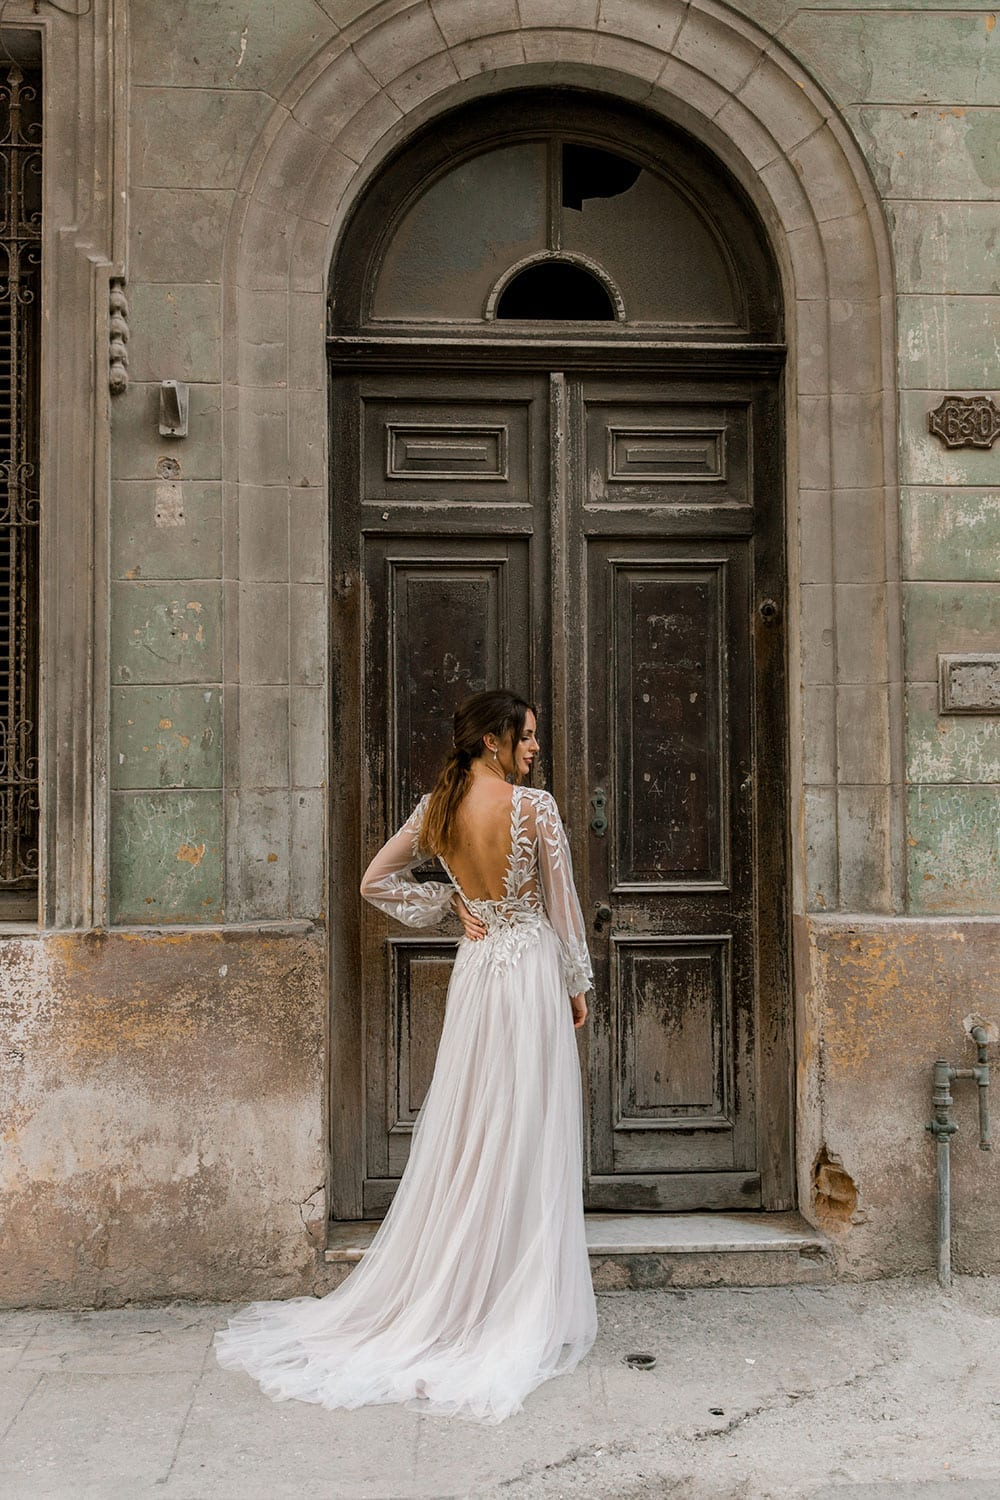 Model wearing Vinka Design Ivy Wedding Dress, a Silk and Tulle Wedding Gown with lace and Swarovski crystals in the streets of Havana with wooden arched doorway in the background